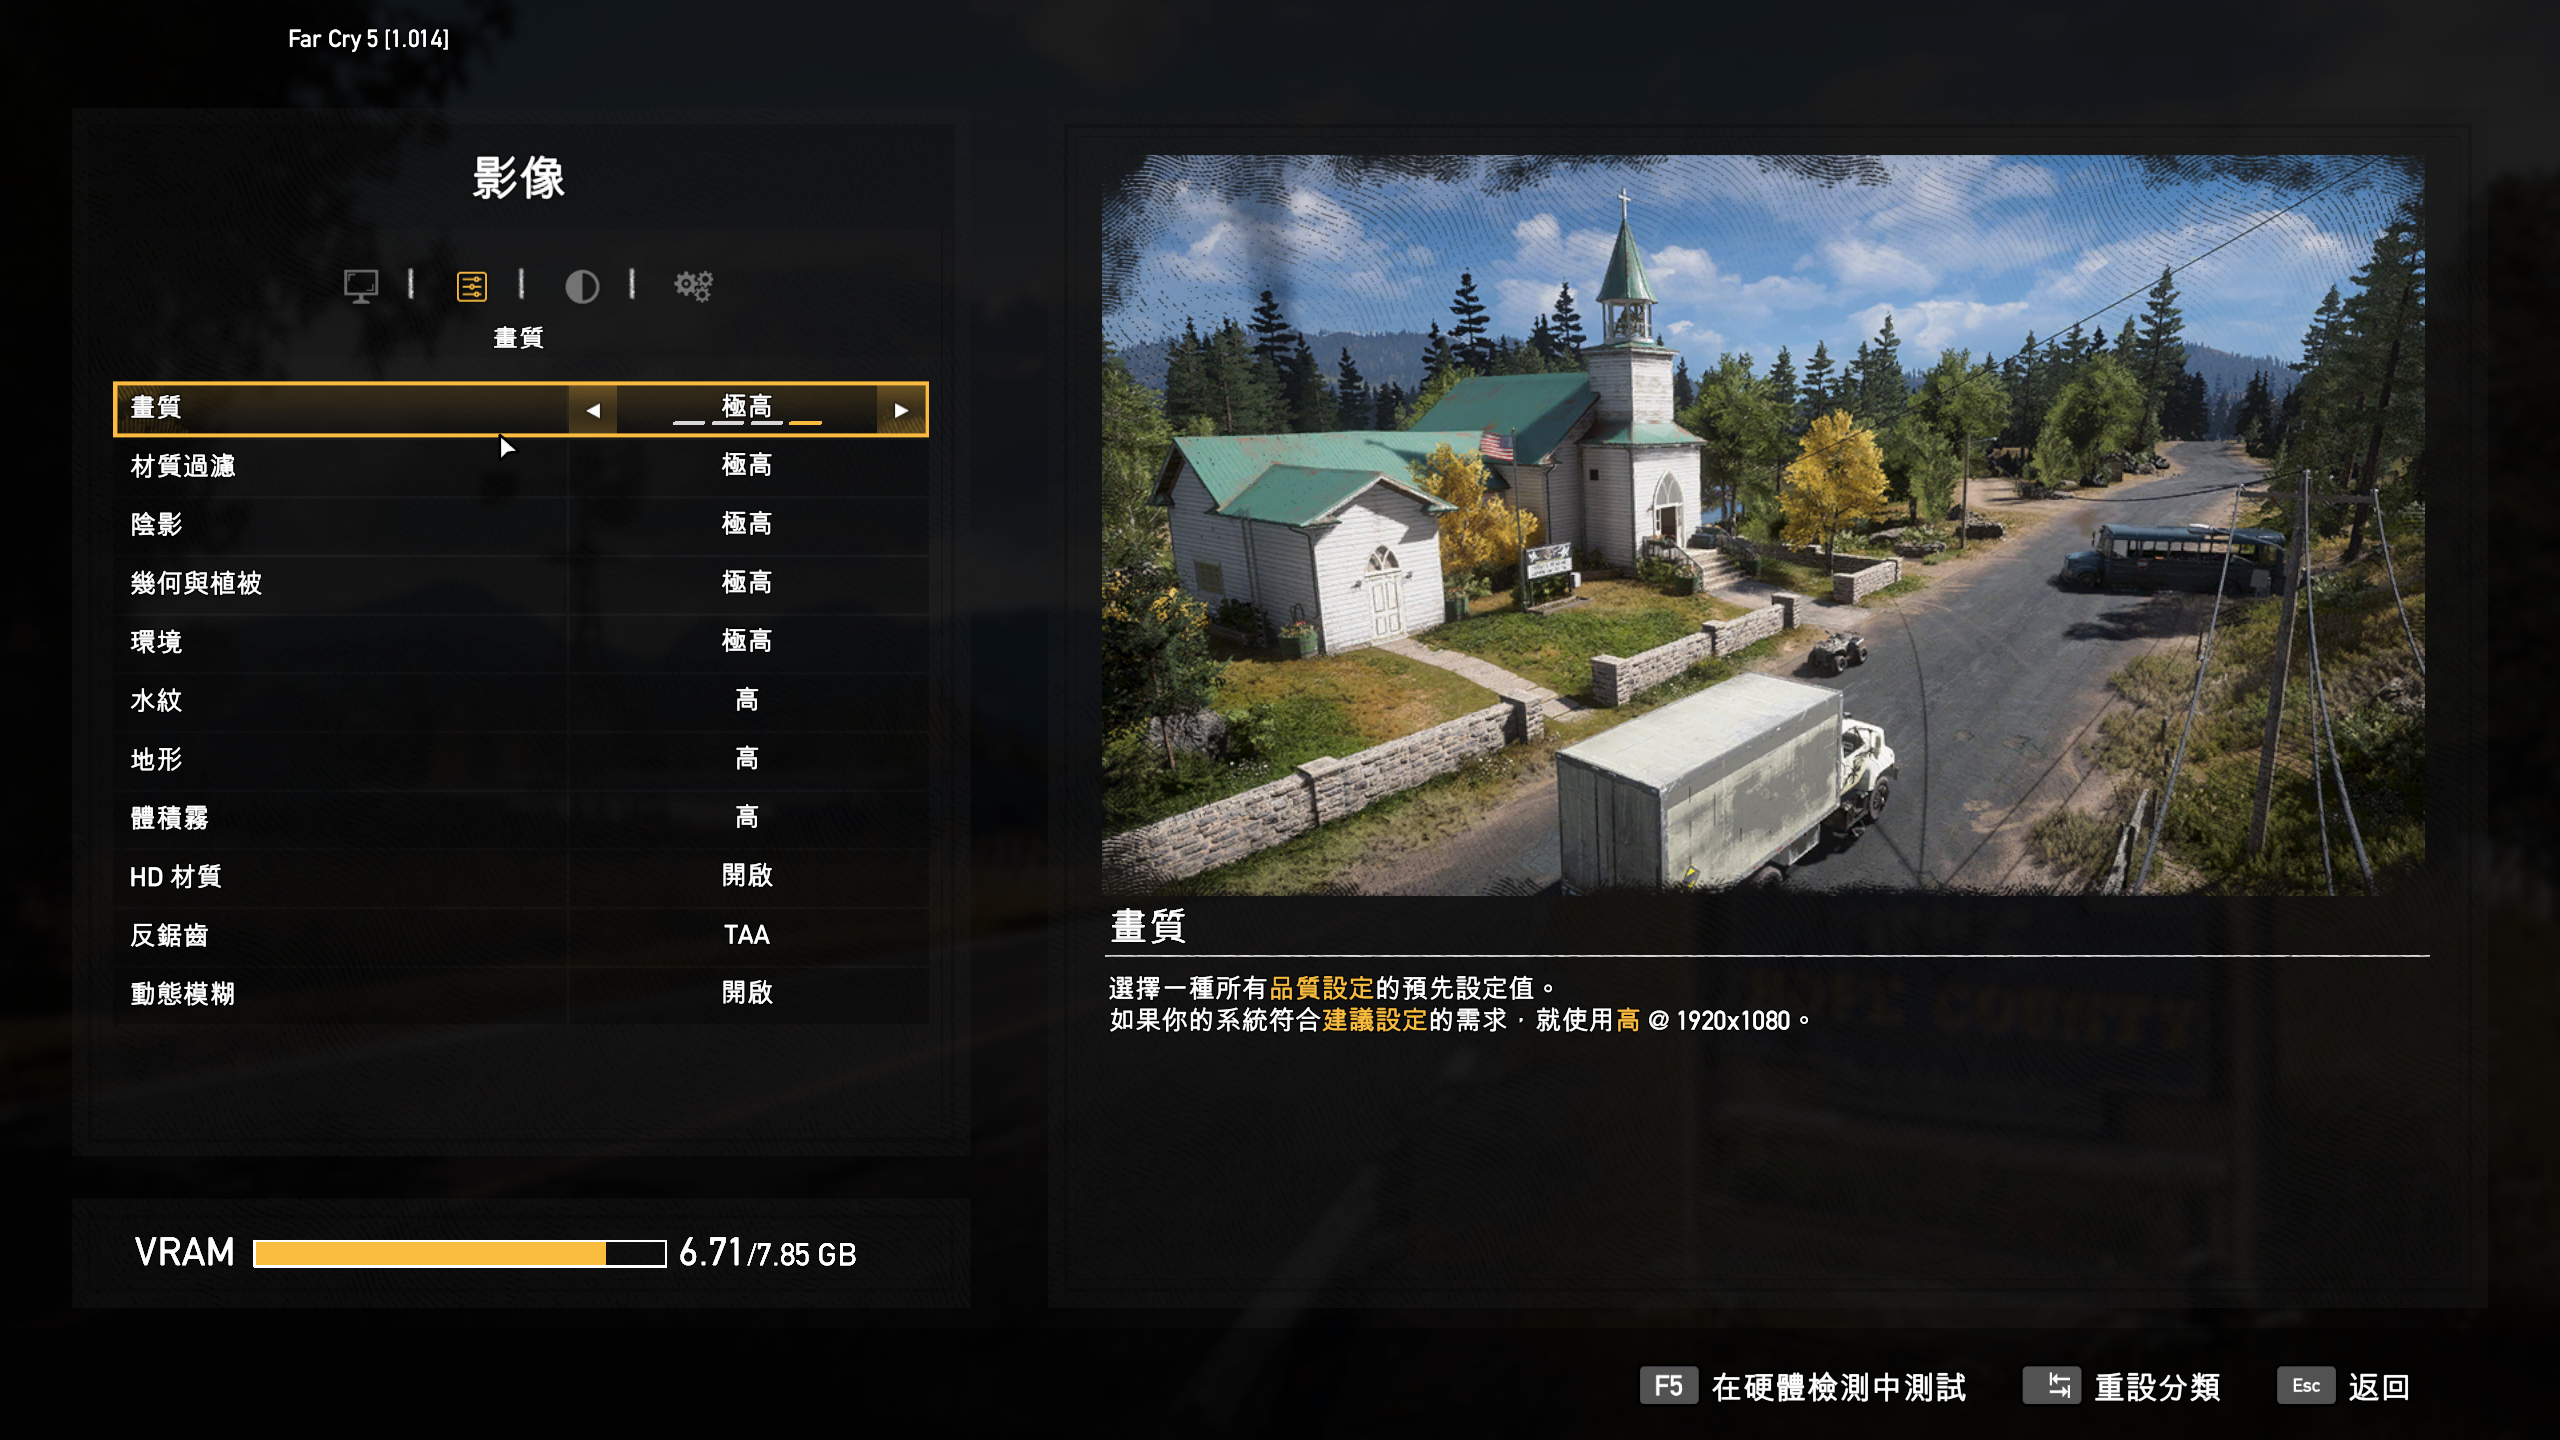 Far Cry 5 is mentioned in the photo [1.014], Video, only 1 required, including gaming laptops, graphics cards, ASUS TUF, gaming consoles, gaming laptops